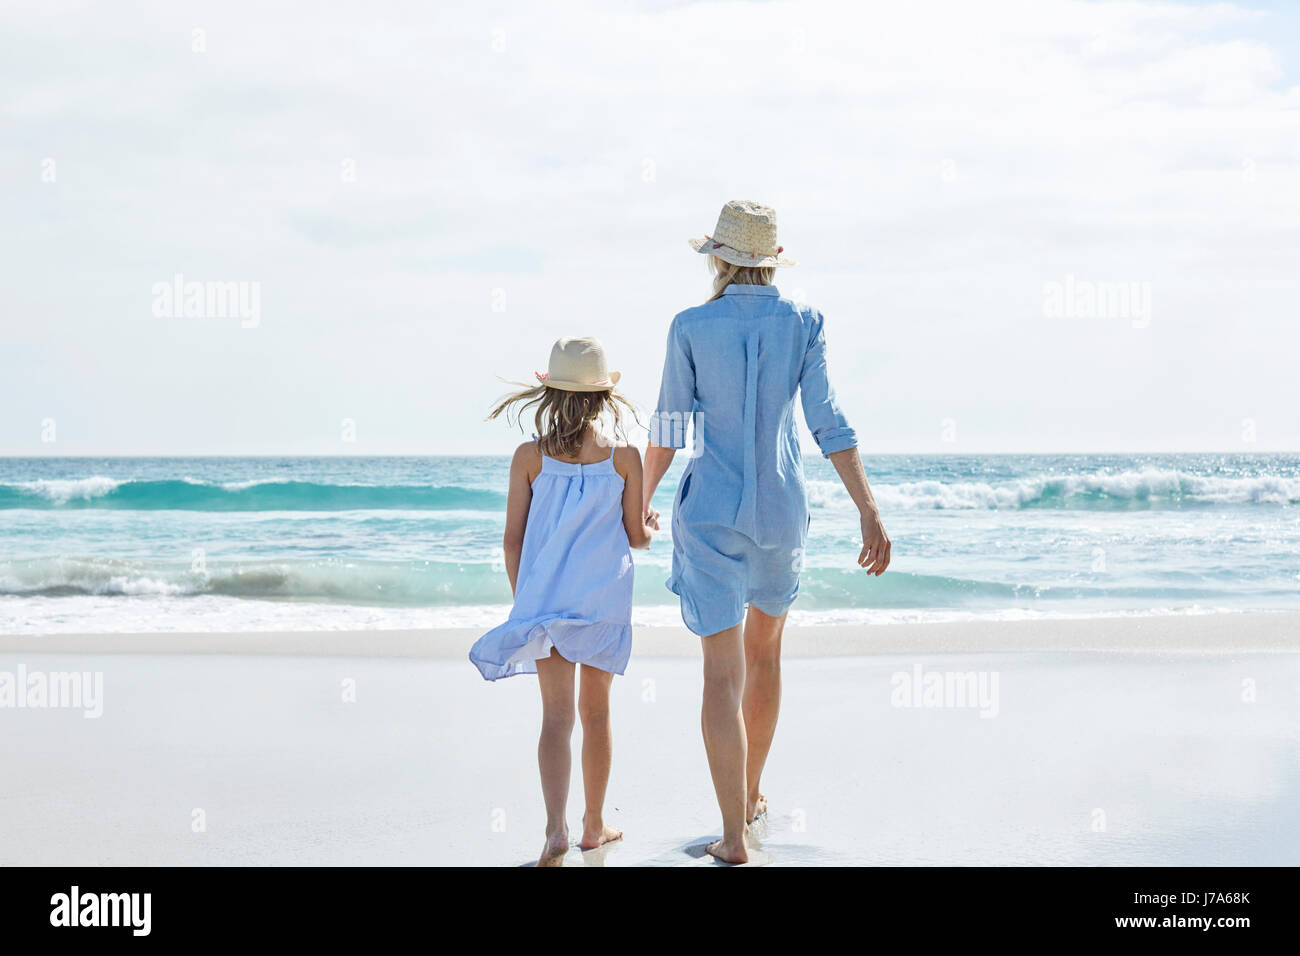 Mother and daughter walking by the sea, rear view - Stock Image